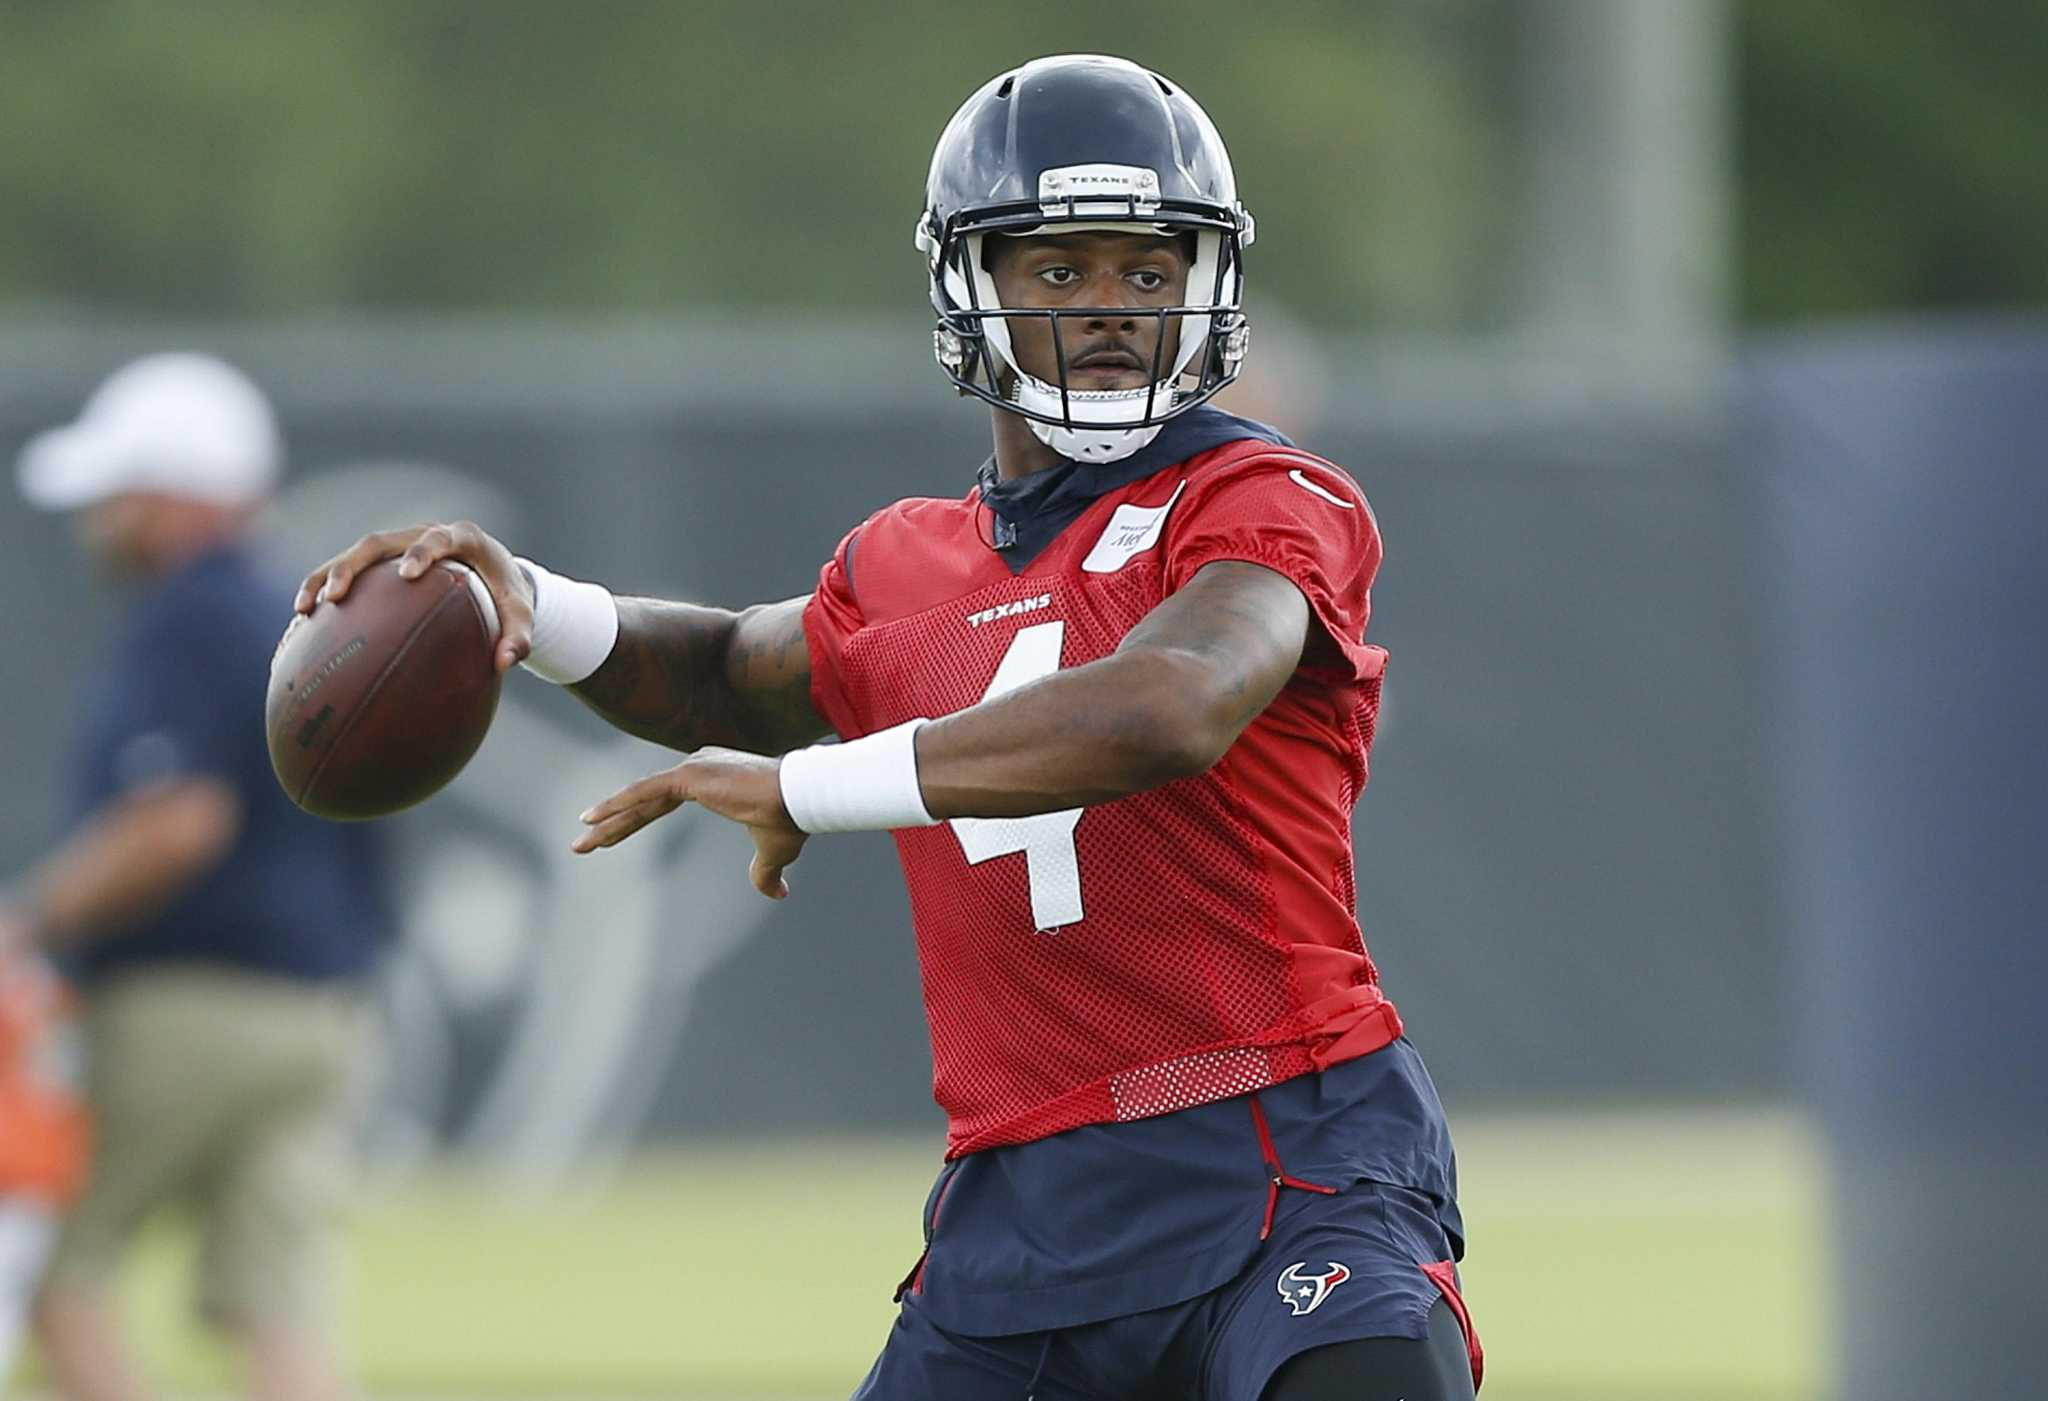 save off 0e4a8 d6978 McClain: Why Deshaun Watson will be one of NFL's elite QBs ...